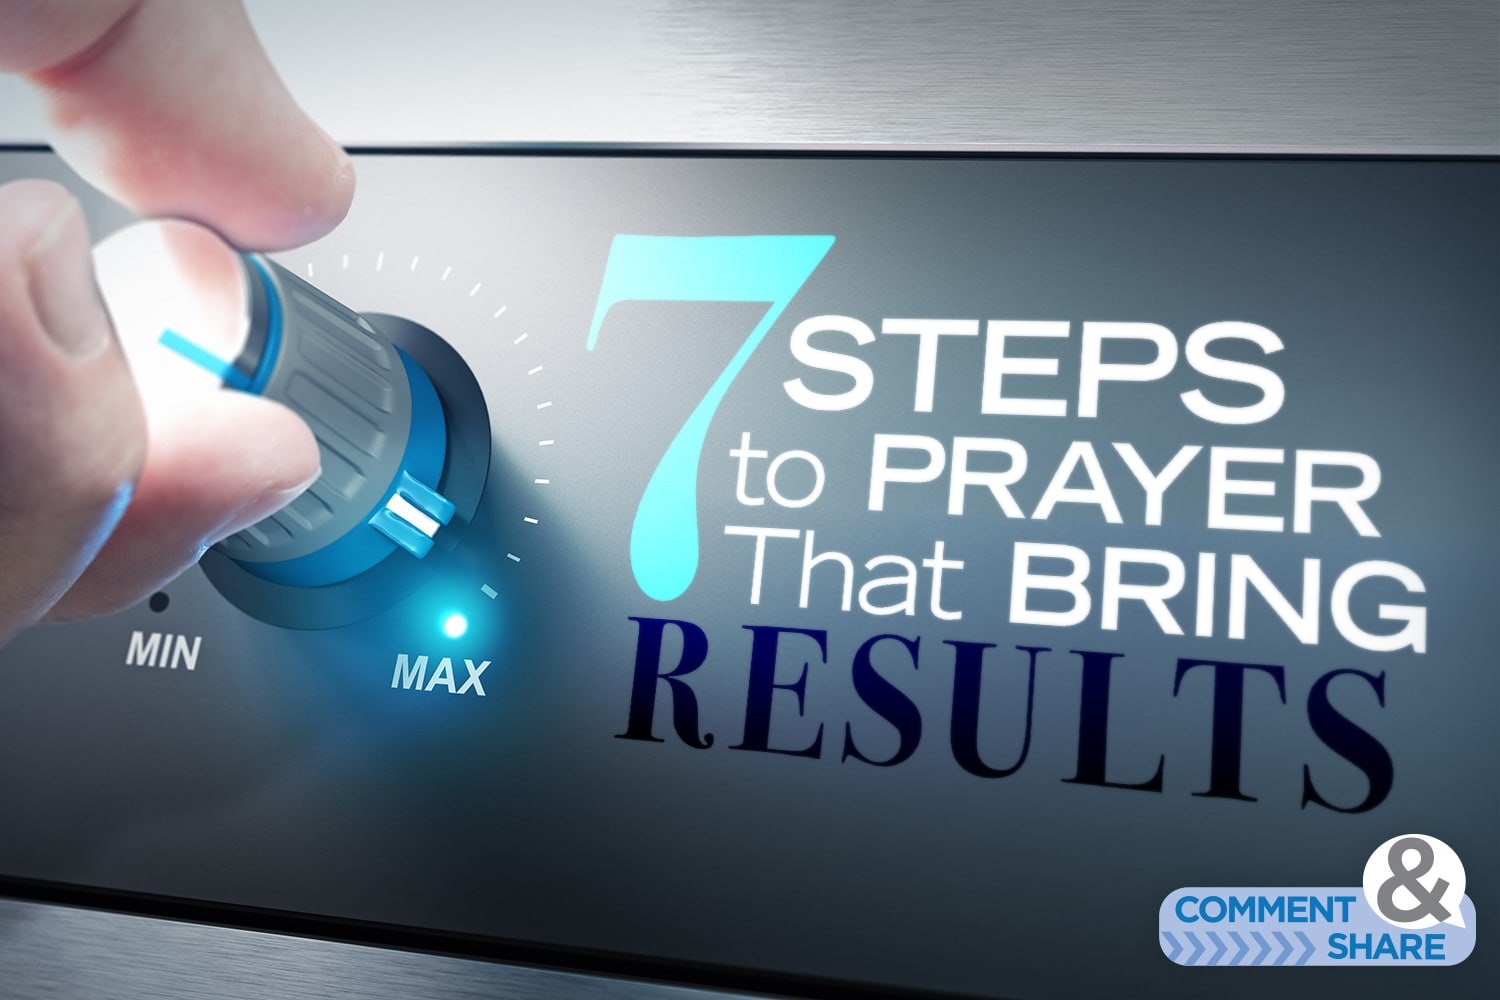 7 Steps to Prayer That Bring Results